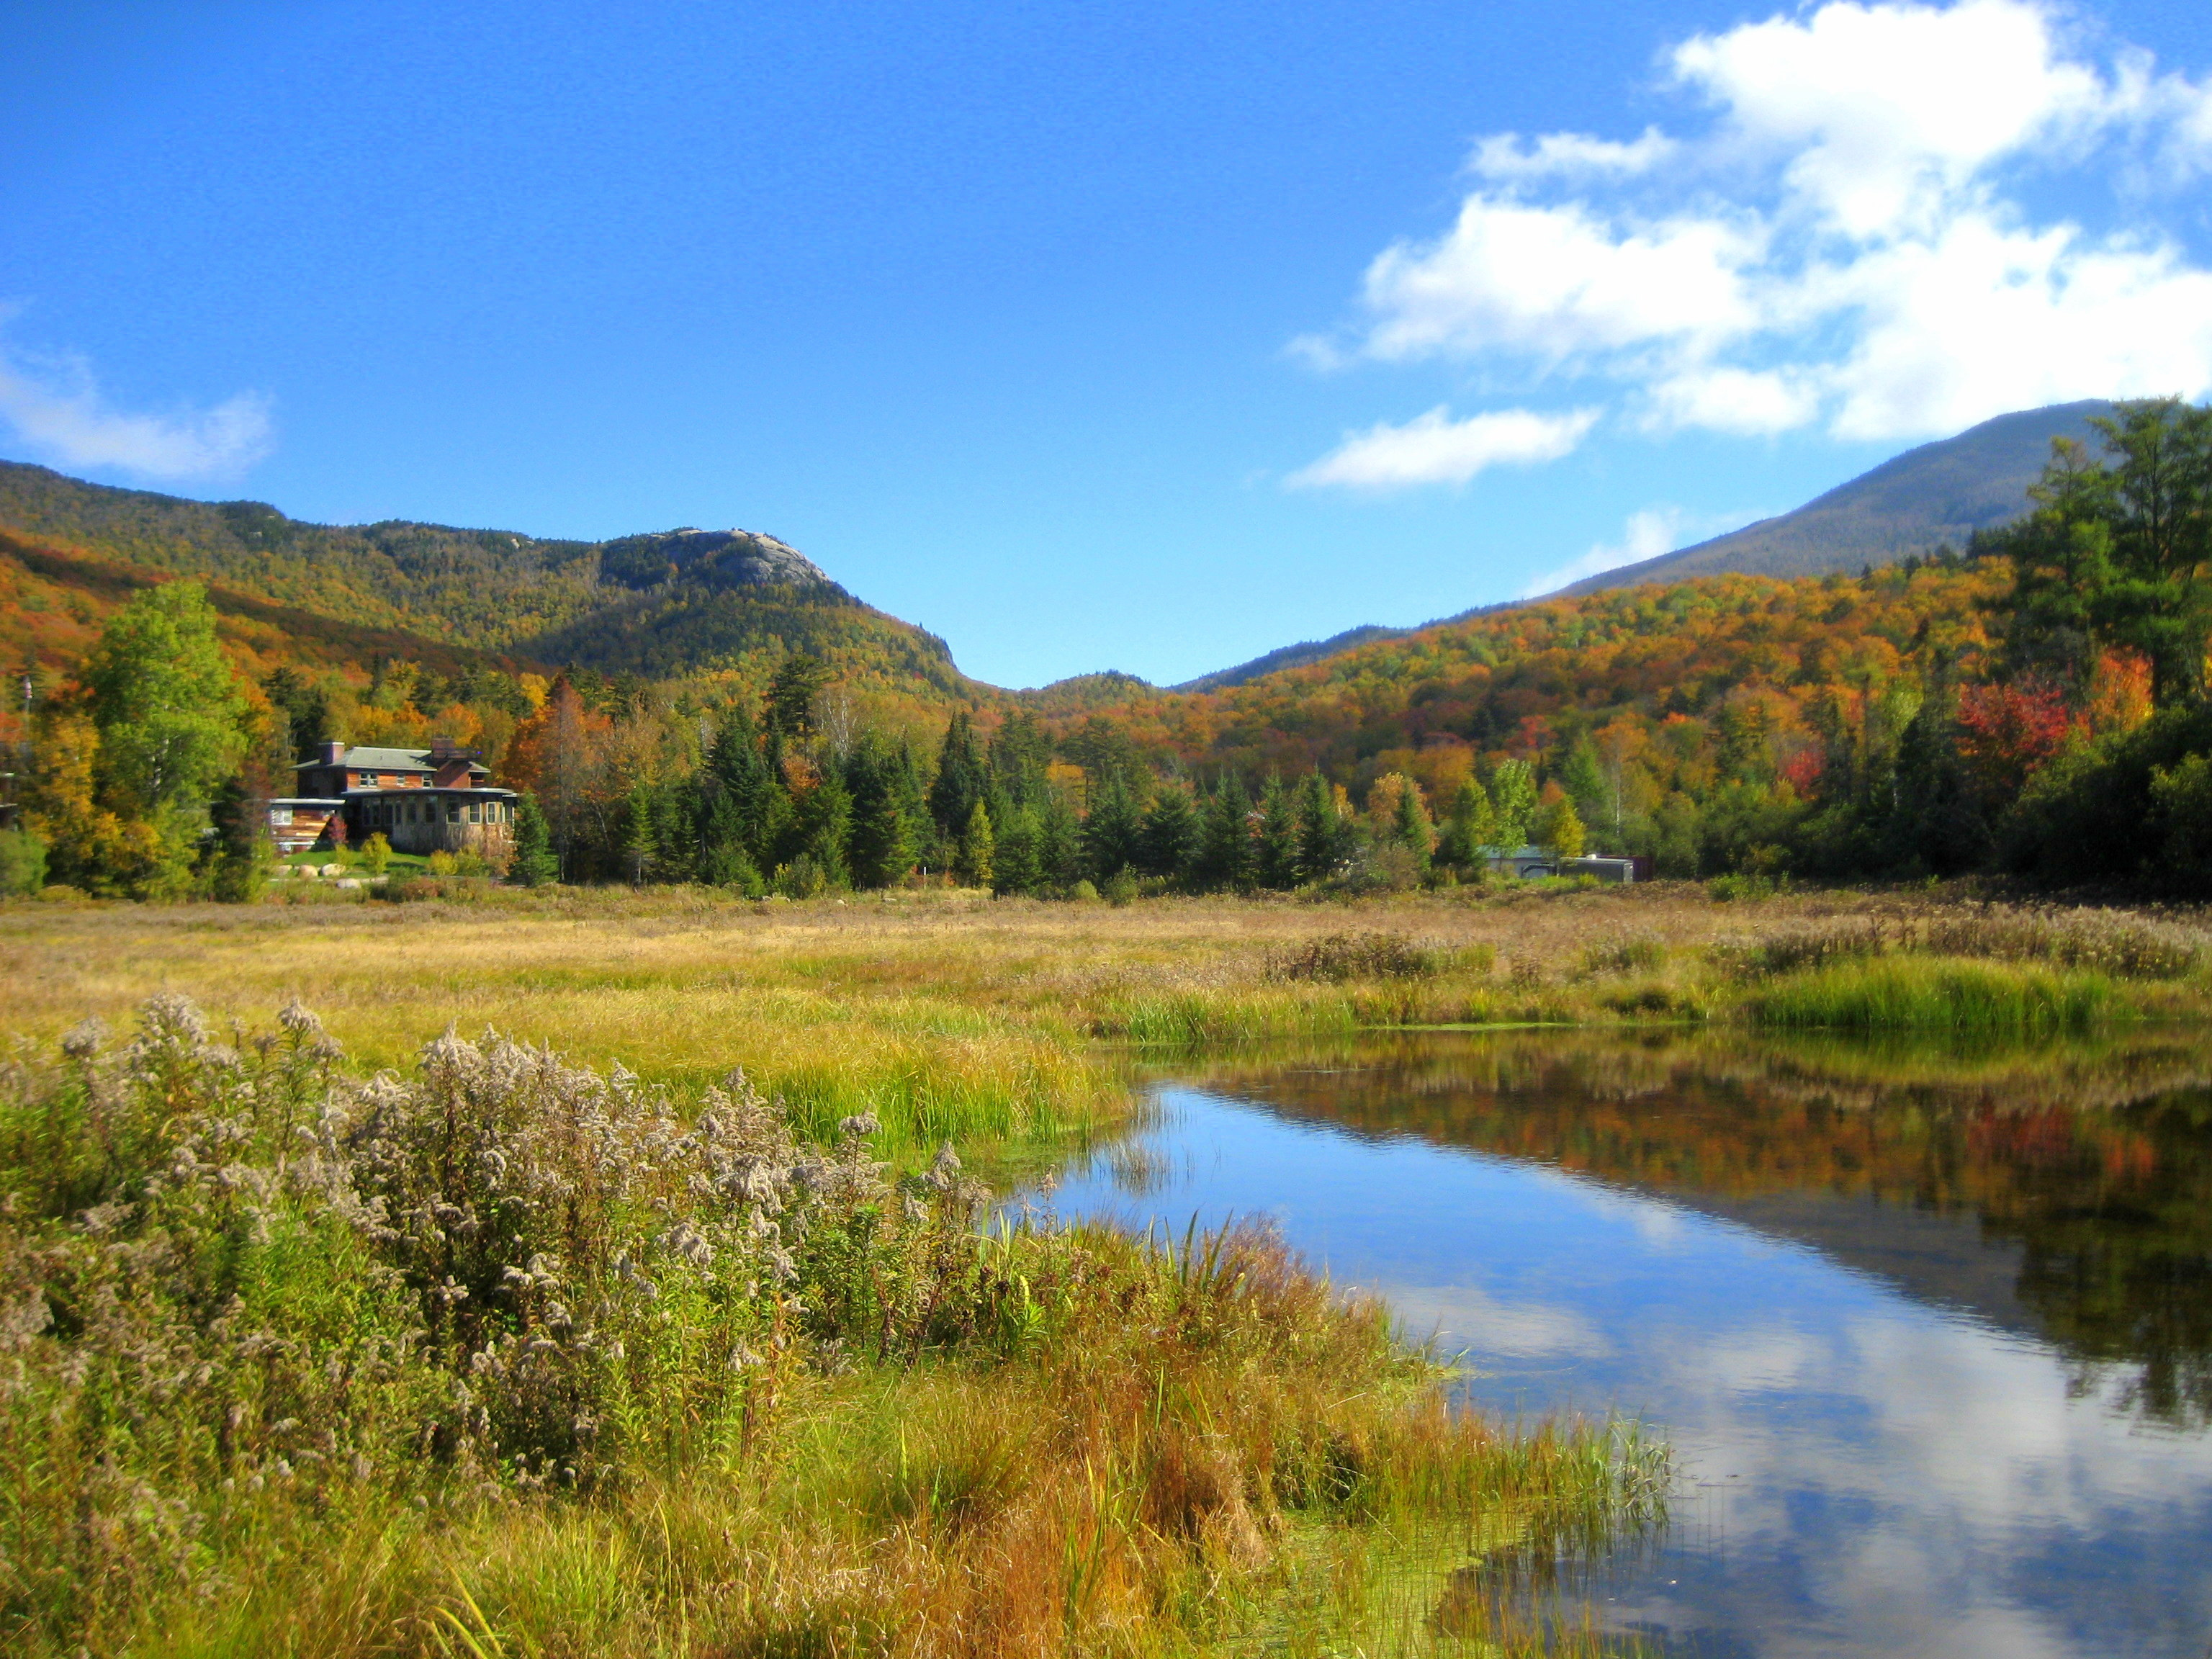 Fall colors at the North Country School